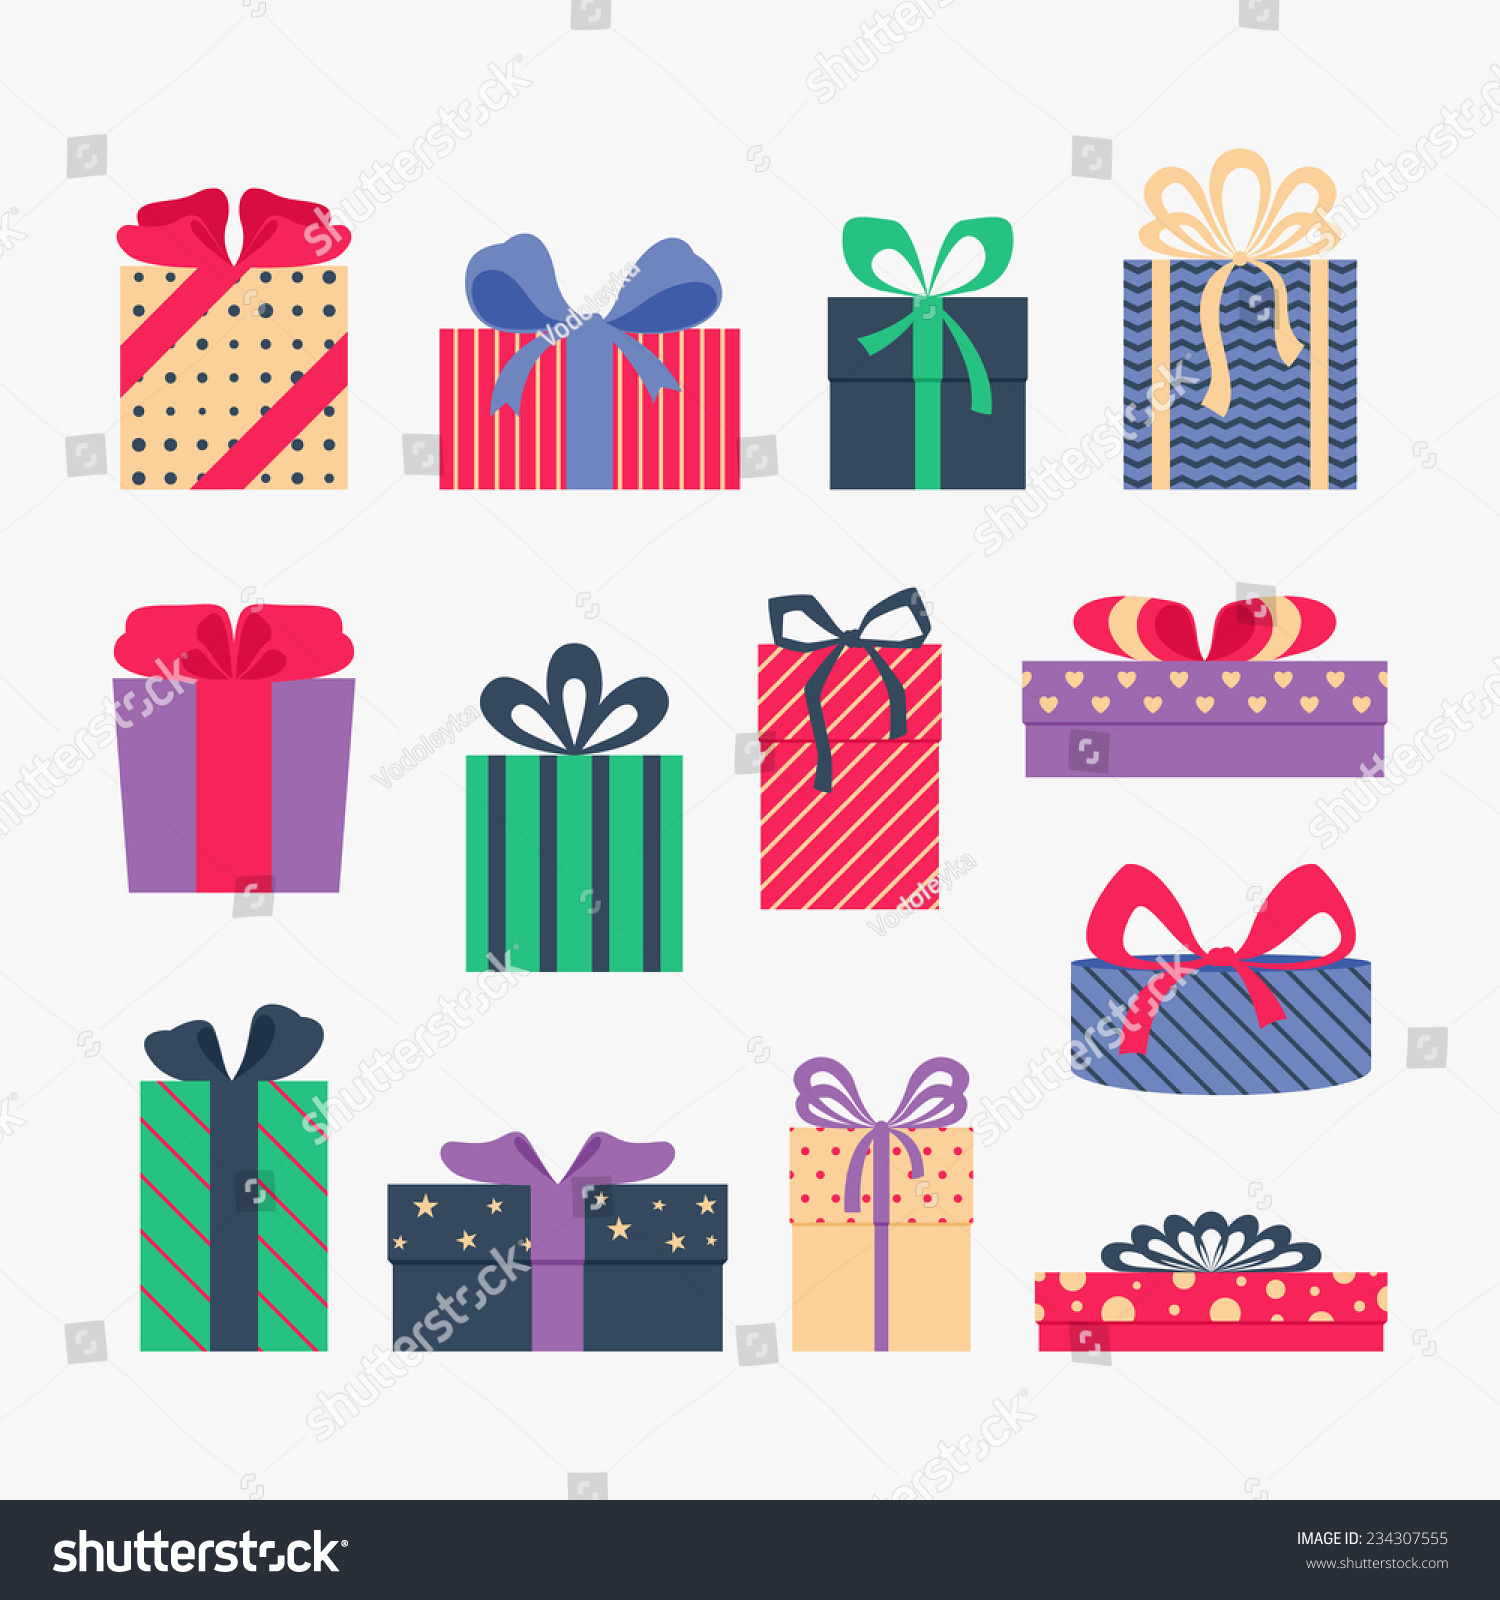 Set Cute Colorful Gift Boxes Isolated Stock Vector (Royalty Free ...